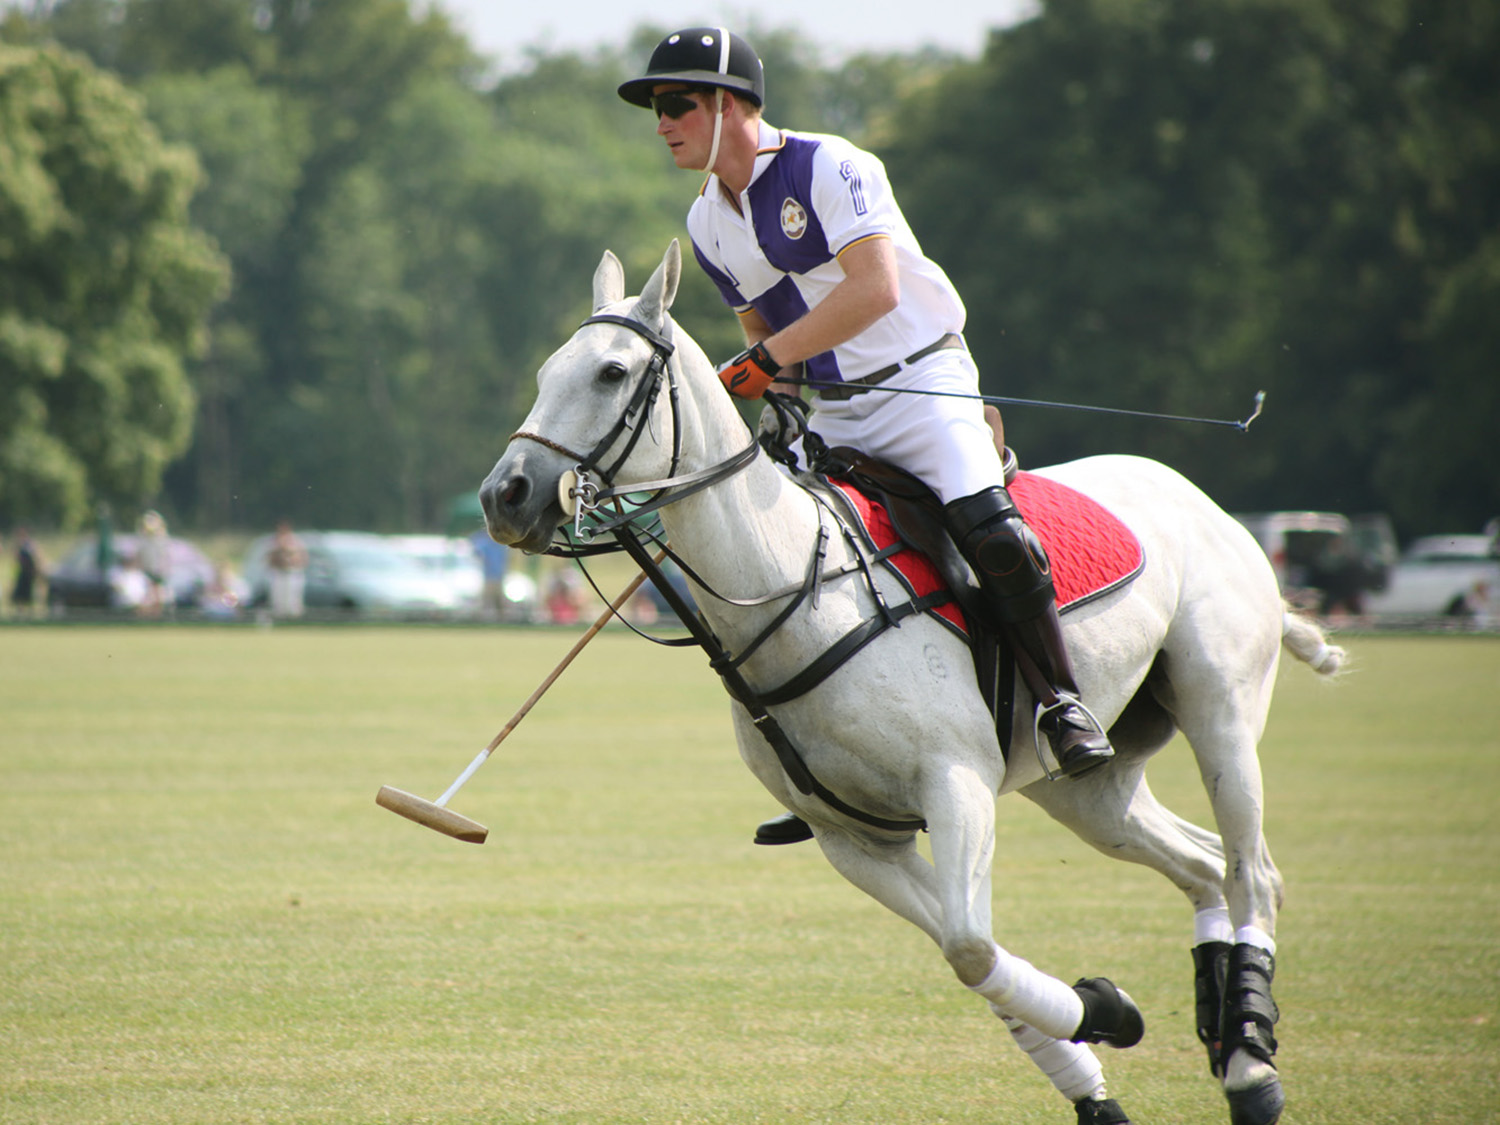 093_Cirencester_Polo_2013_by_Harriet_Armstrong